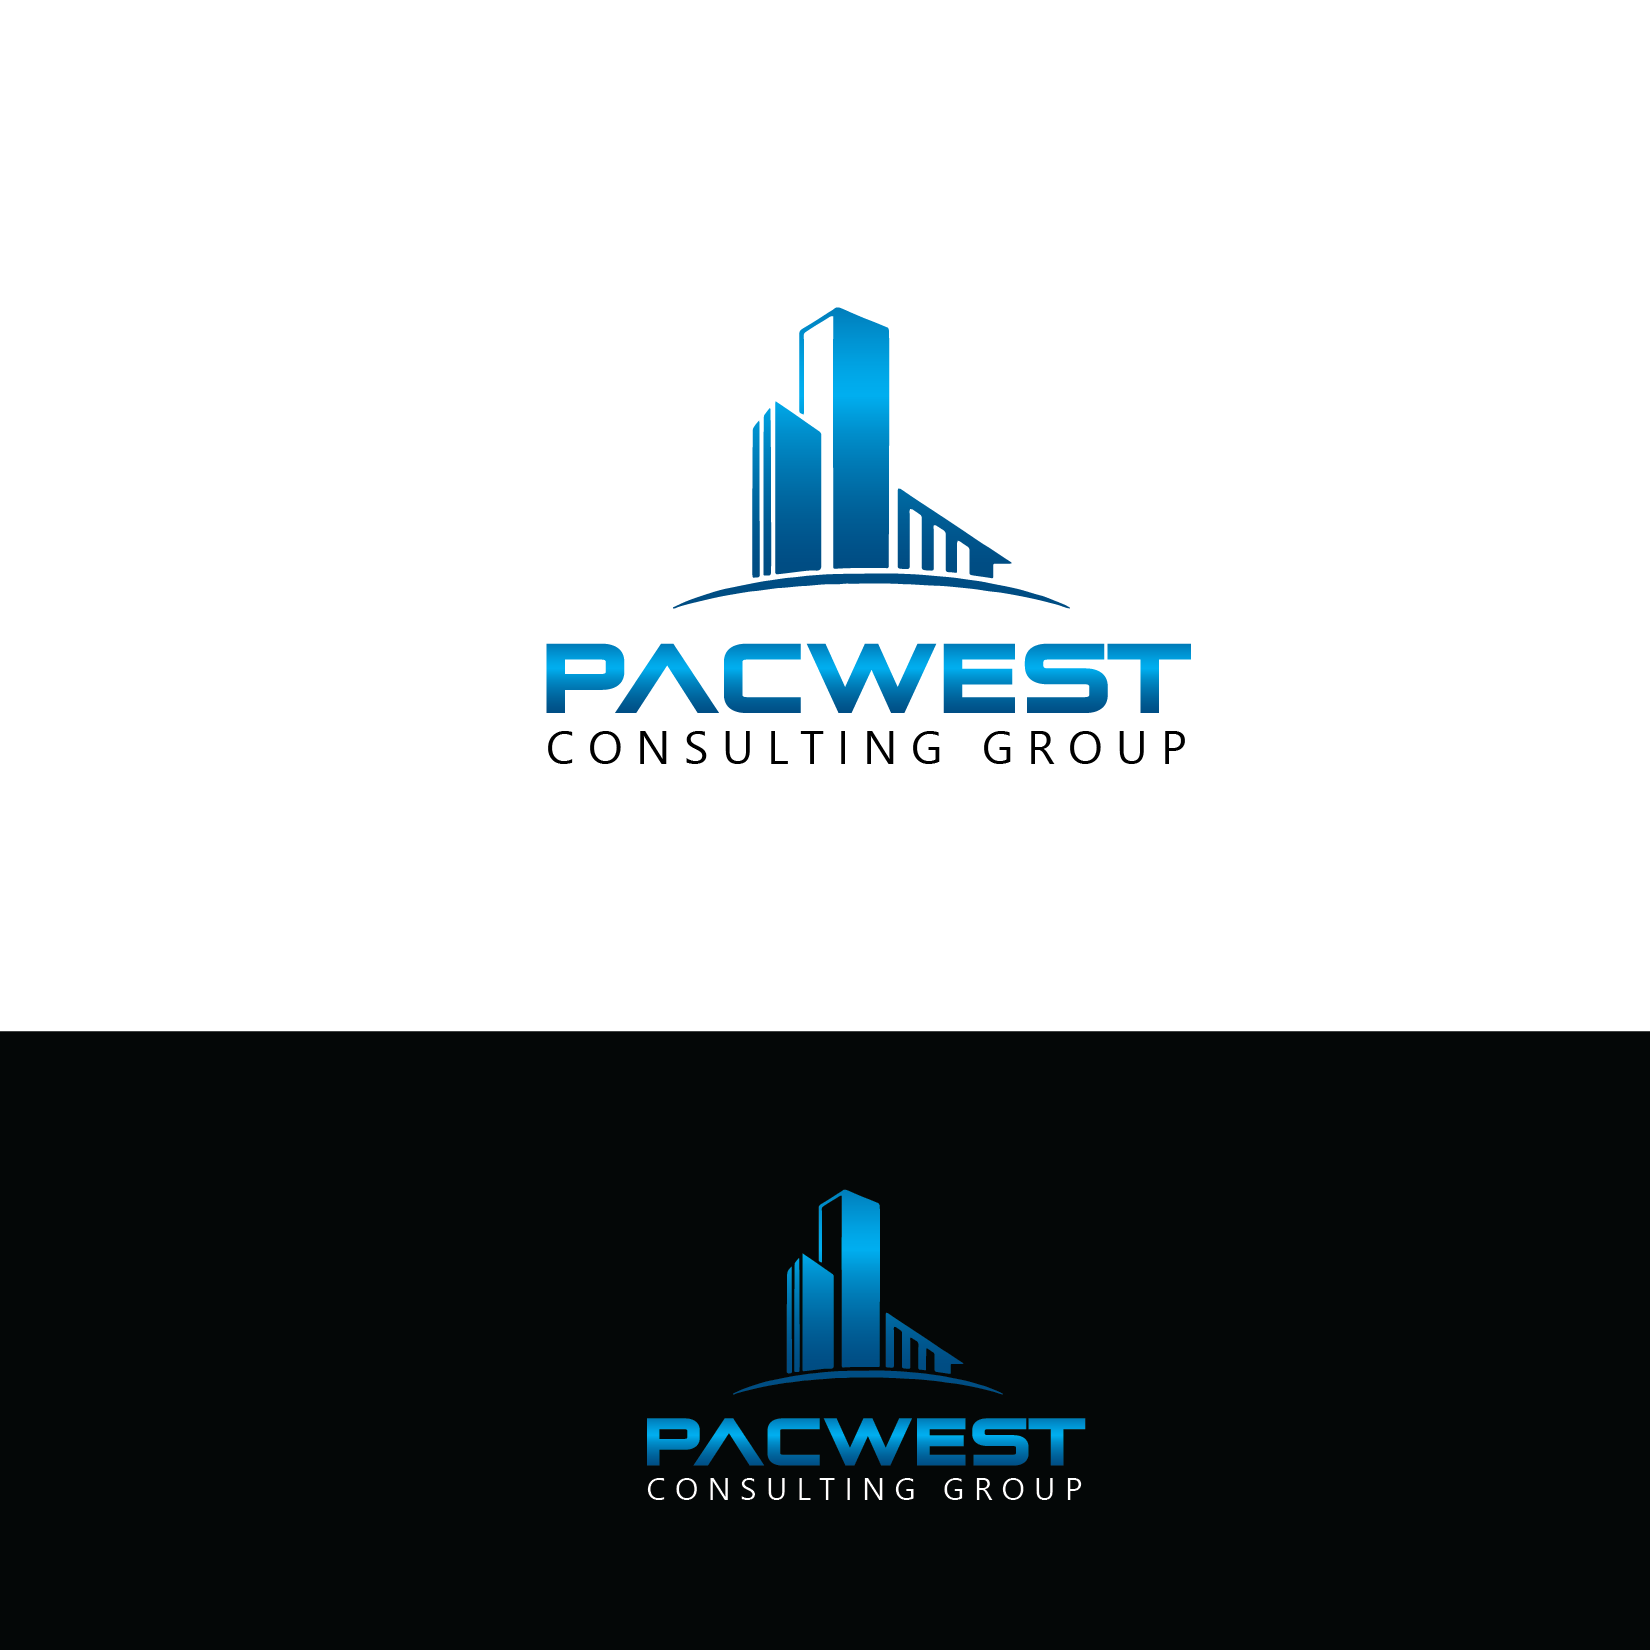 Logo Design by Private User - Entry No. 85 in the Logo Design Contest Imaginative Logo Design for Pacwest Consulting Group.